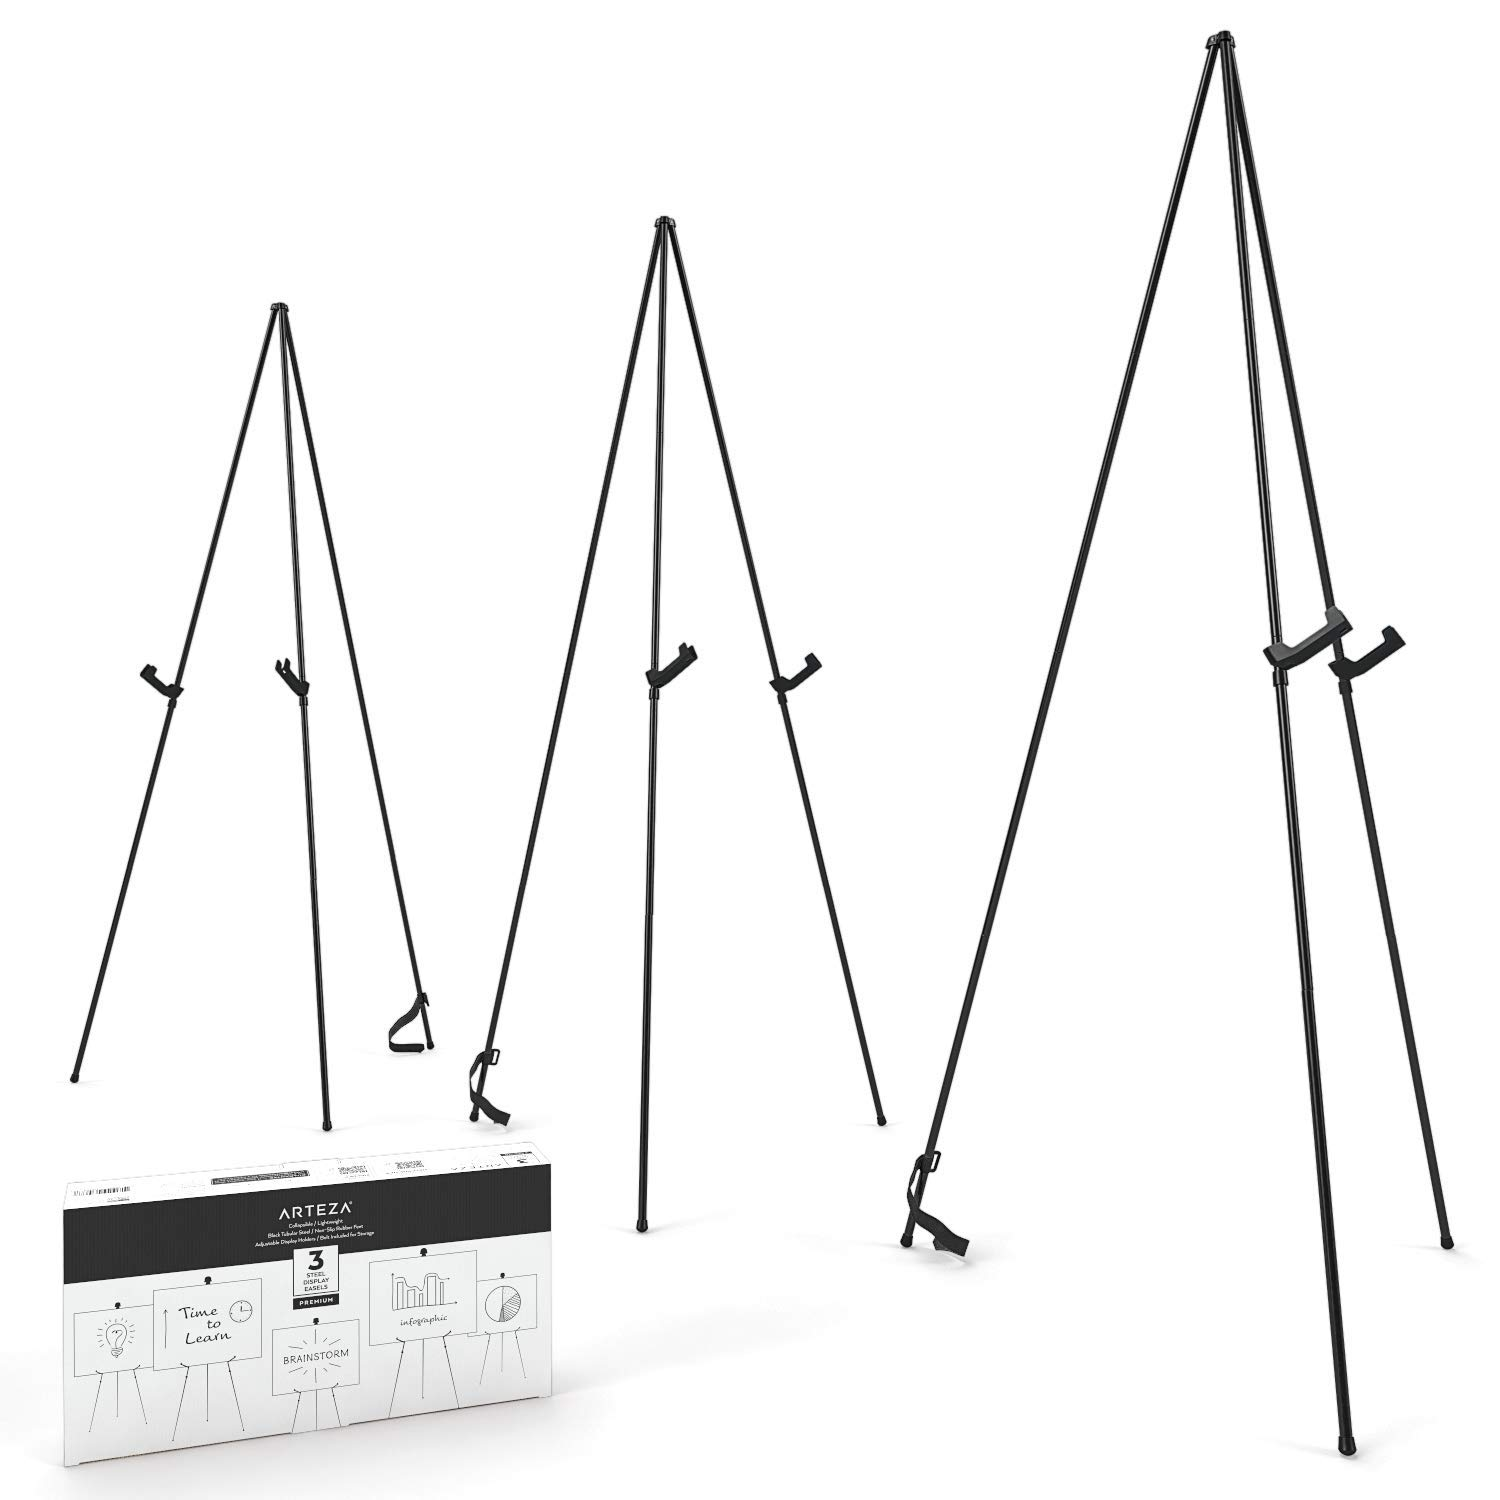 ARTEZA Black Steel Display Easel, 63'' Tall, Pack of 3, Portable, Easy Assembly, Sturdy, Ideal for Trade Shows, Presentations, Posters, Art Displays, and Canvases